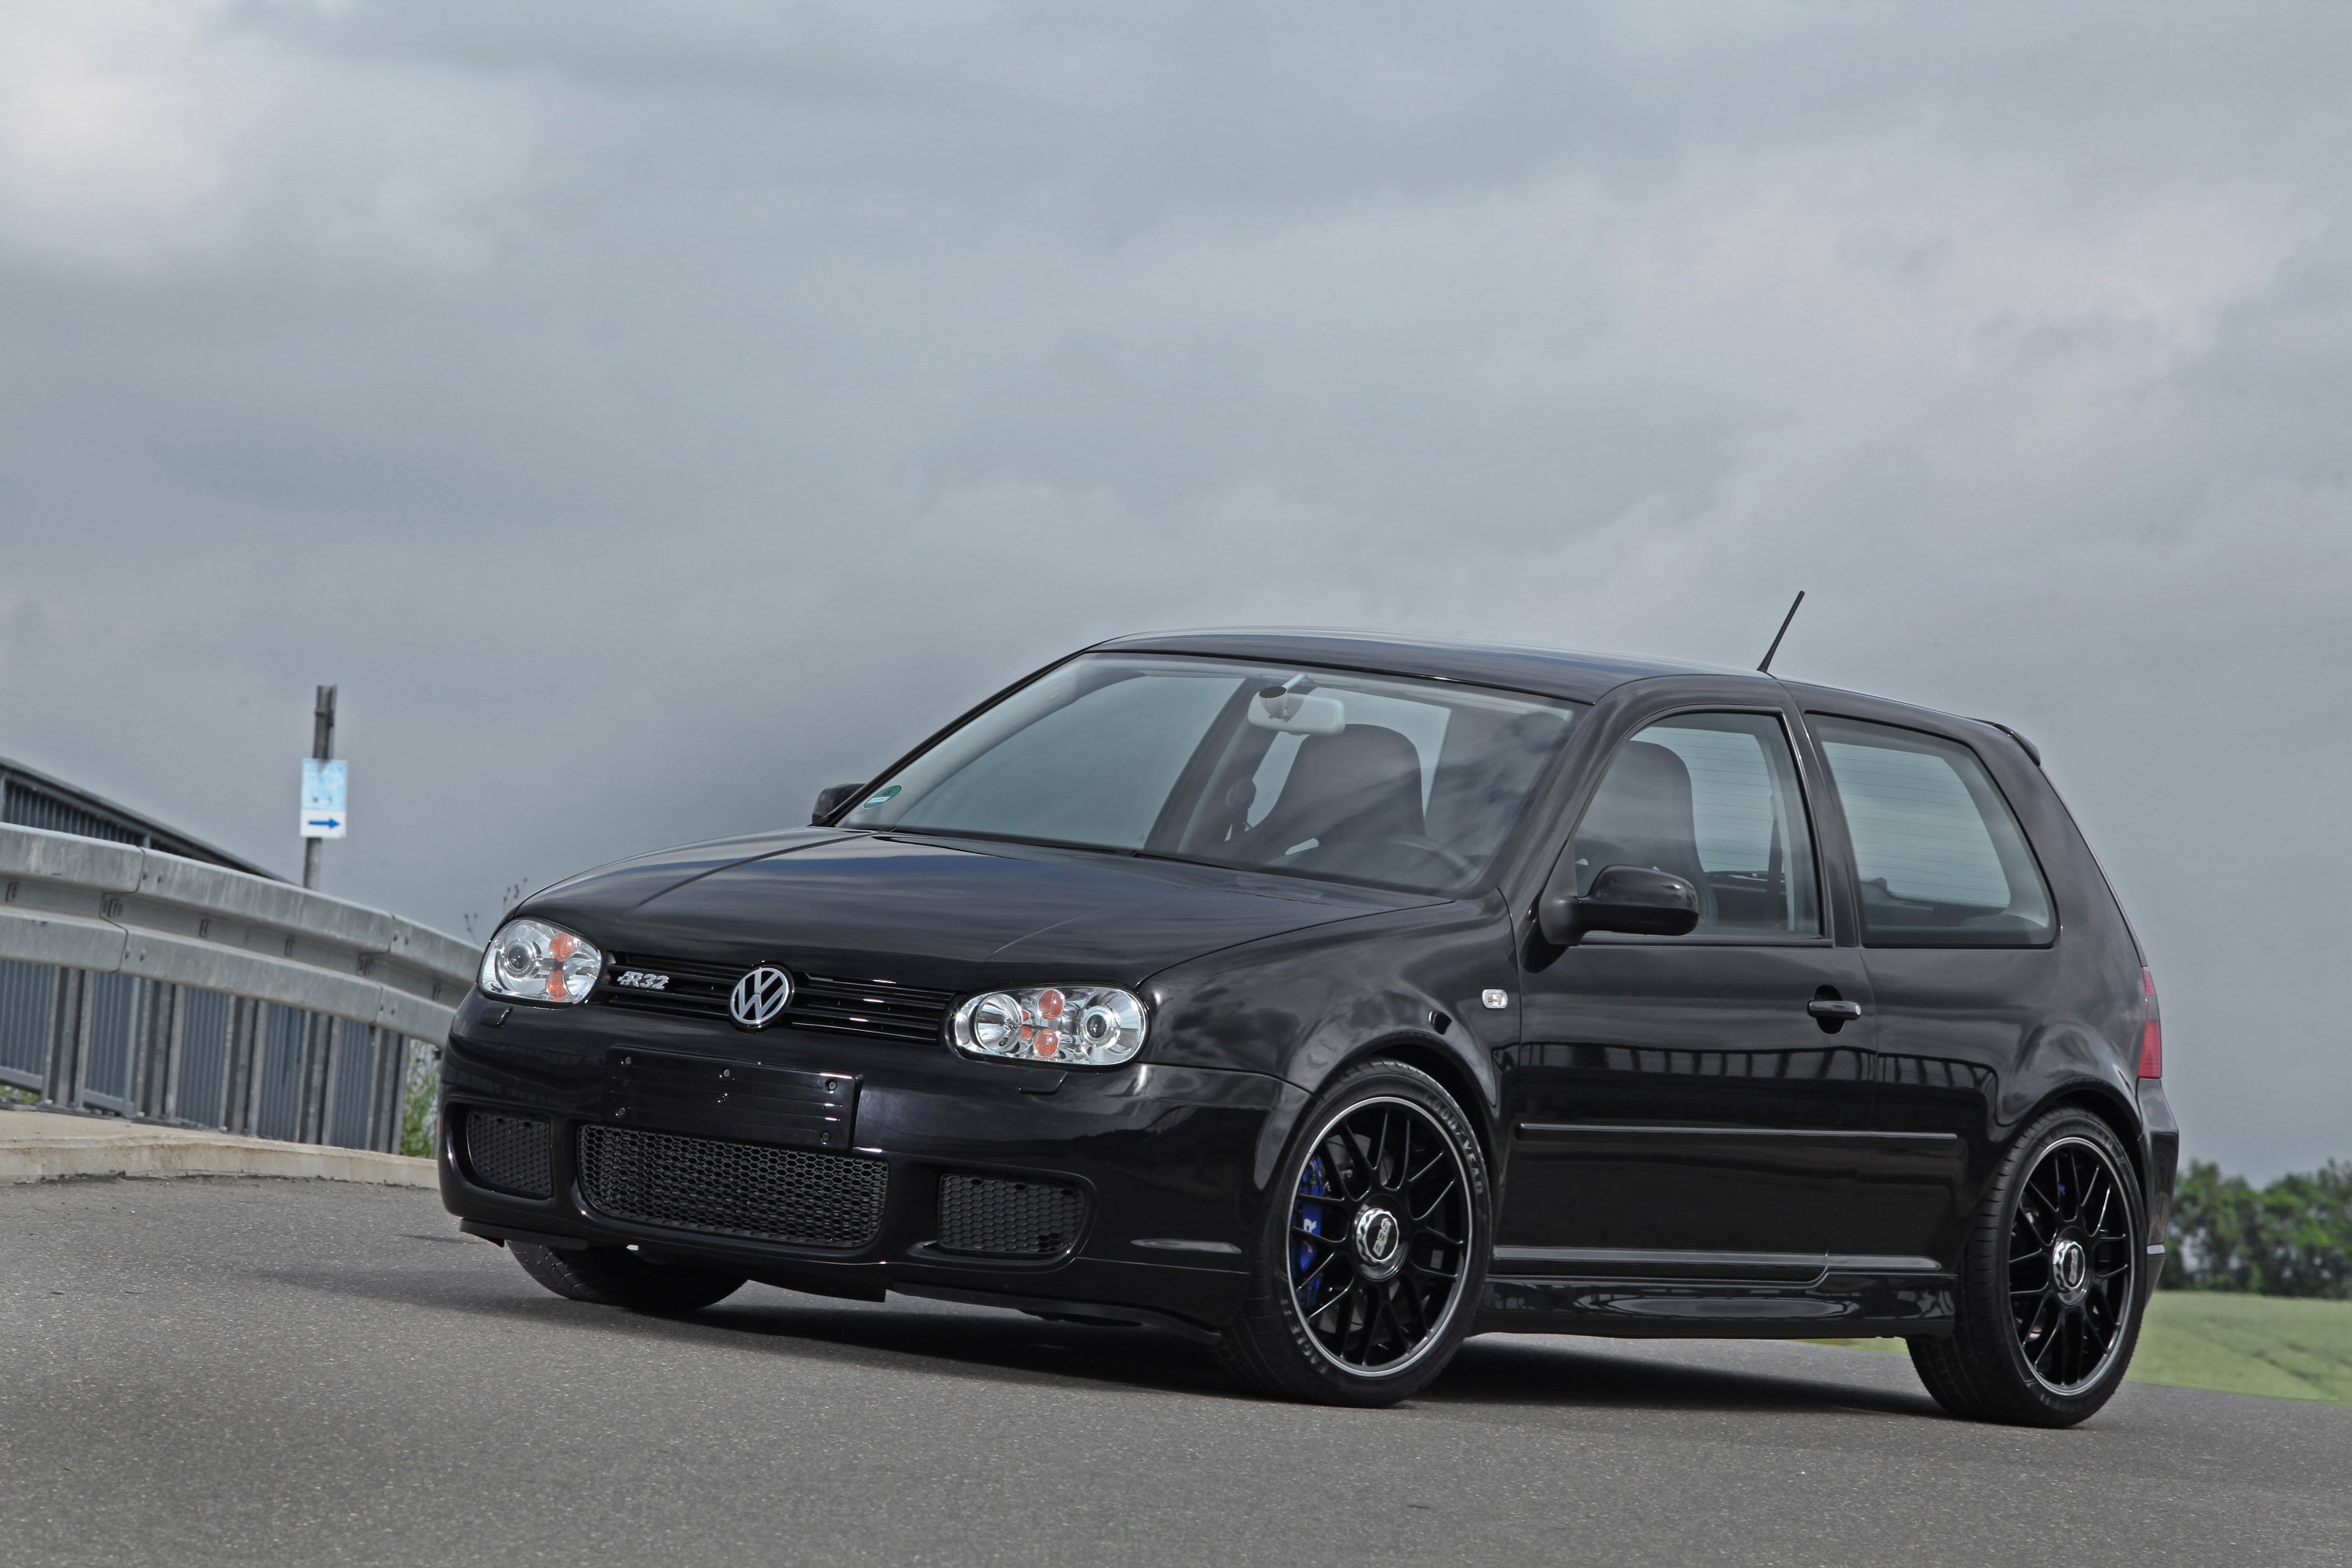 Volkswagen Golf Iv R32 By Hperformance 650hp